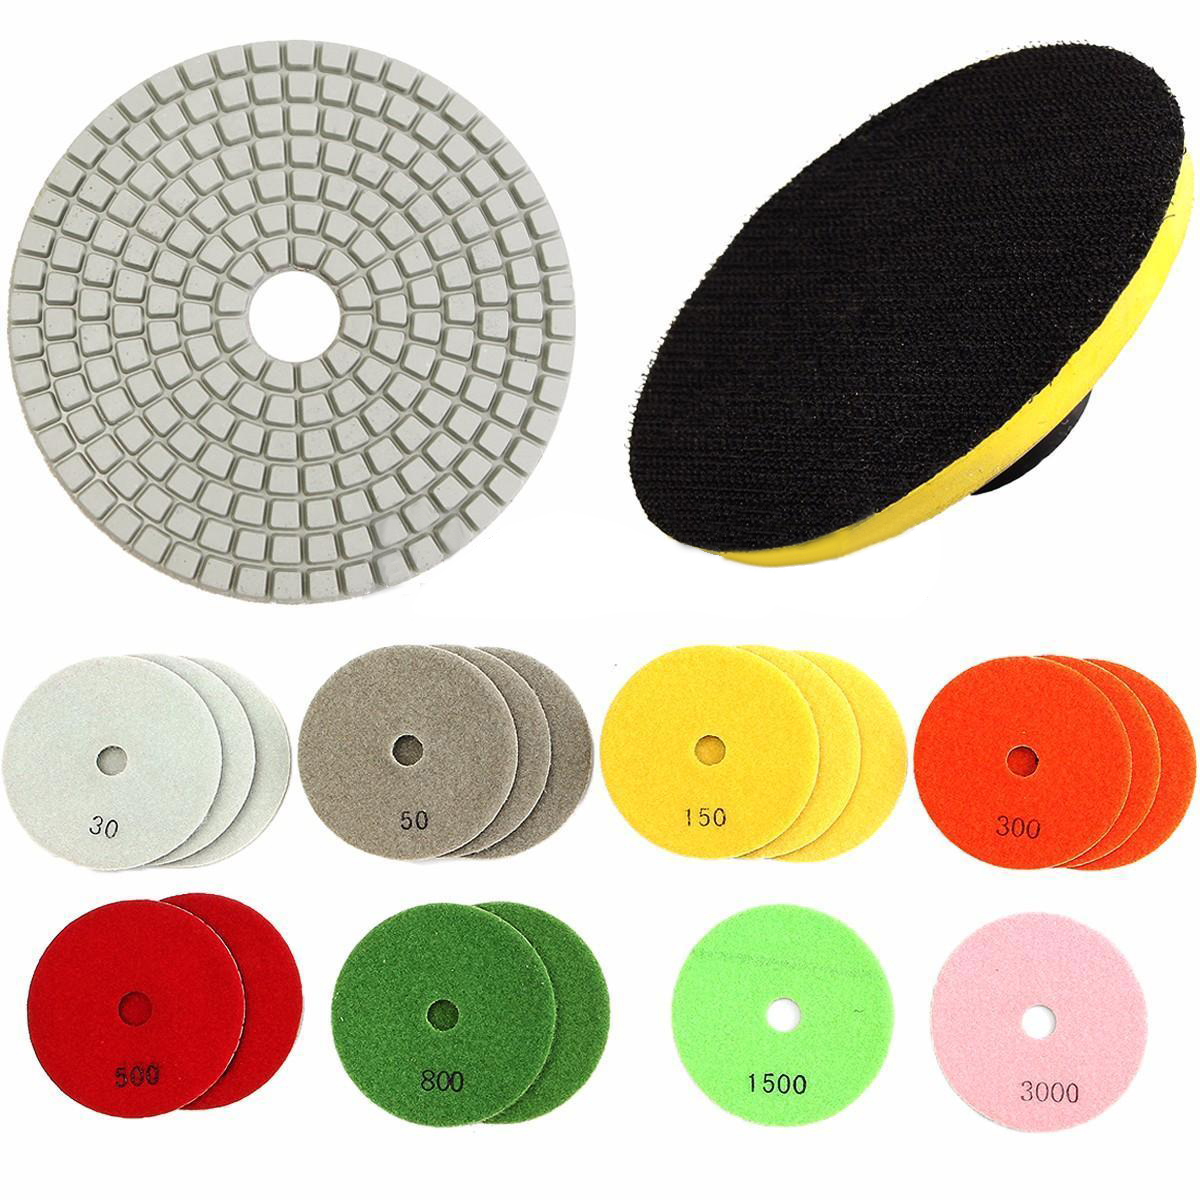 19pcs 4 inch Diamond Polishing Pad Set With Backer Pad for Granite Marble Concrete Stone Tiles Wet/Dry Polishing Mayitr 4 inch diamond polishing pads 19 piece set granite marble concrete stone wet dry 2018 new arrival